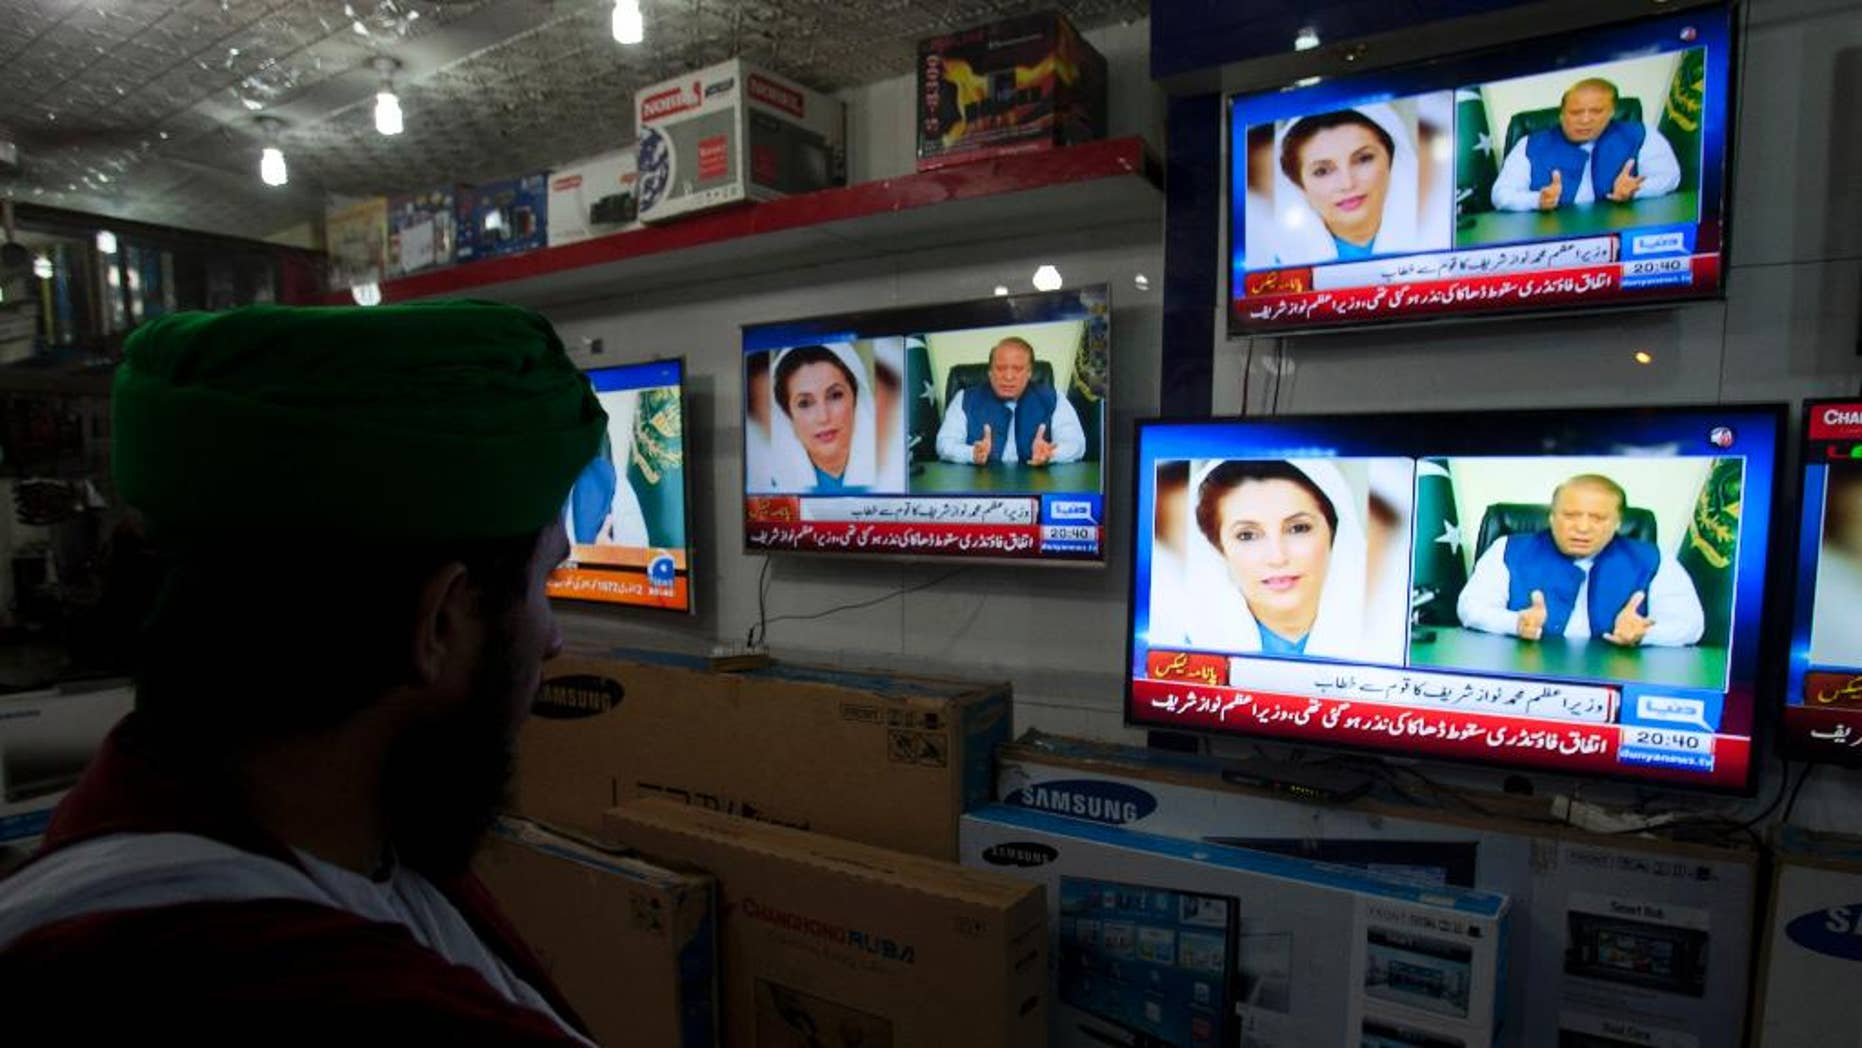 A man watches a televised address of Pakistan's Prime Minister Nawaz Sharif at an electronic shop in Karachi, Pakistan, Tuesday, April 5, 2016. Sharif has announced that he will set up an independent judicial commission to probe whether his family is involved in illegal overseas investments after reports based on documents leaked from a Panama-based law firm indicated his sons owned several offshore companies. (AP Photo/Shakil Adil)